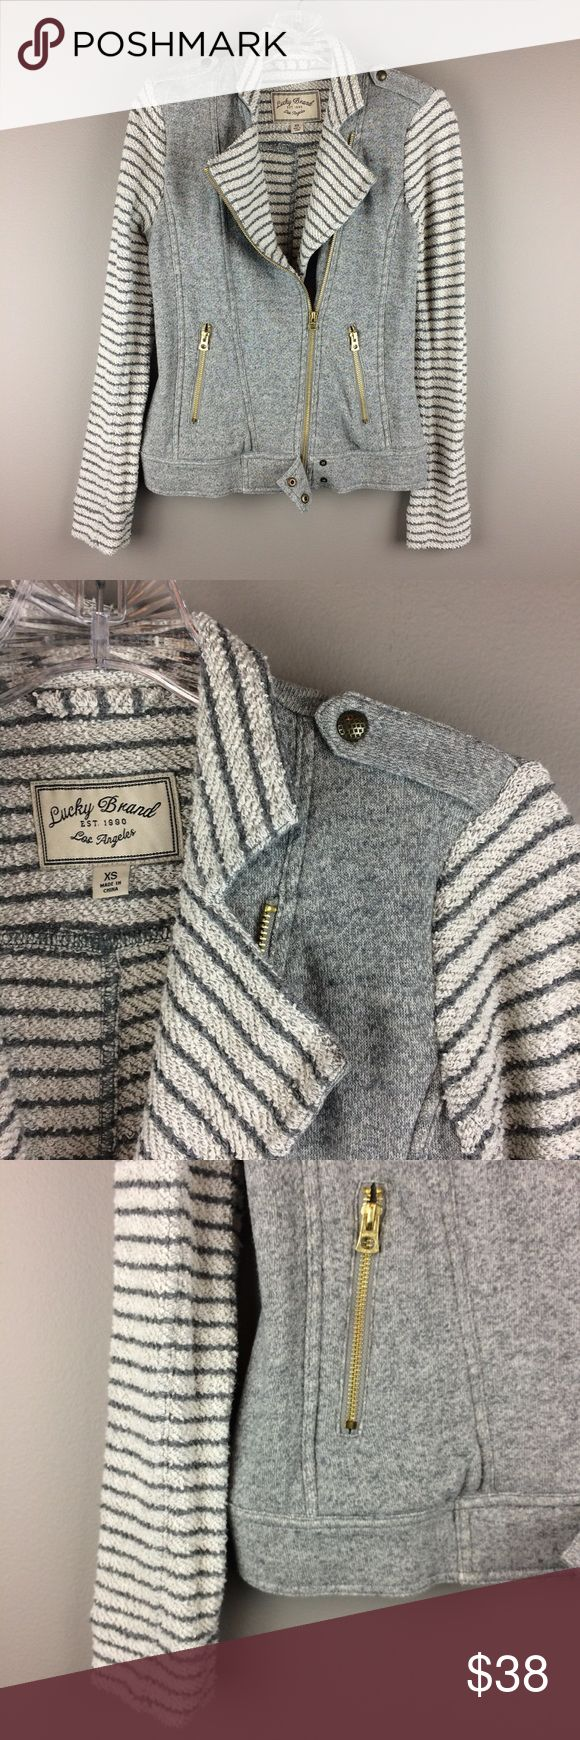 Lucky Brand gray stripe zip up moto sweater jacket Condition: Preowned, no holes or stains. Great condition.  Color: shades or gray and off white  Measurements: Size XS Underarm to underarm is approximately 16 1/2 inches across.  Length from back of neck to bottom of hem is approximately 22 1/2 inches. Sleeve length from top of shoulder at seam is approximately 25 inches.   Materials: see photo of tag Lucky Brand Jackets & Coats